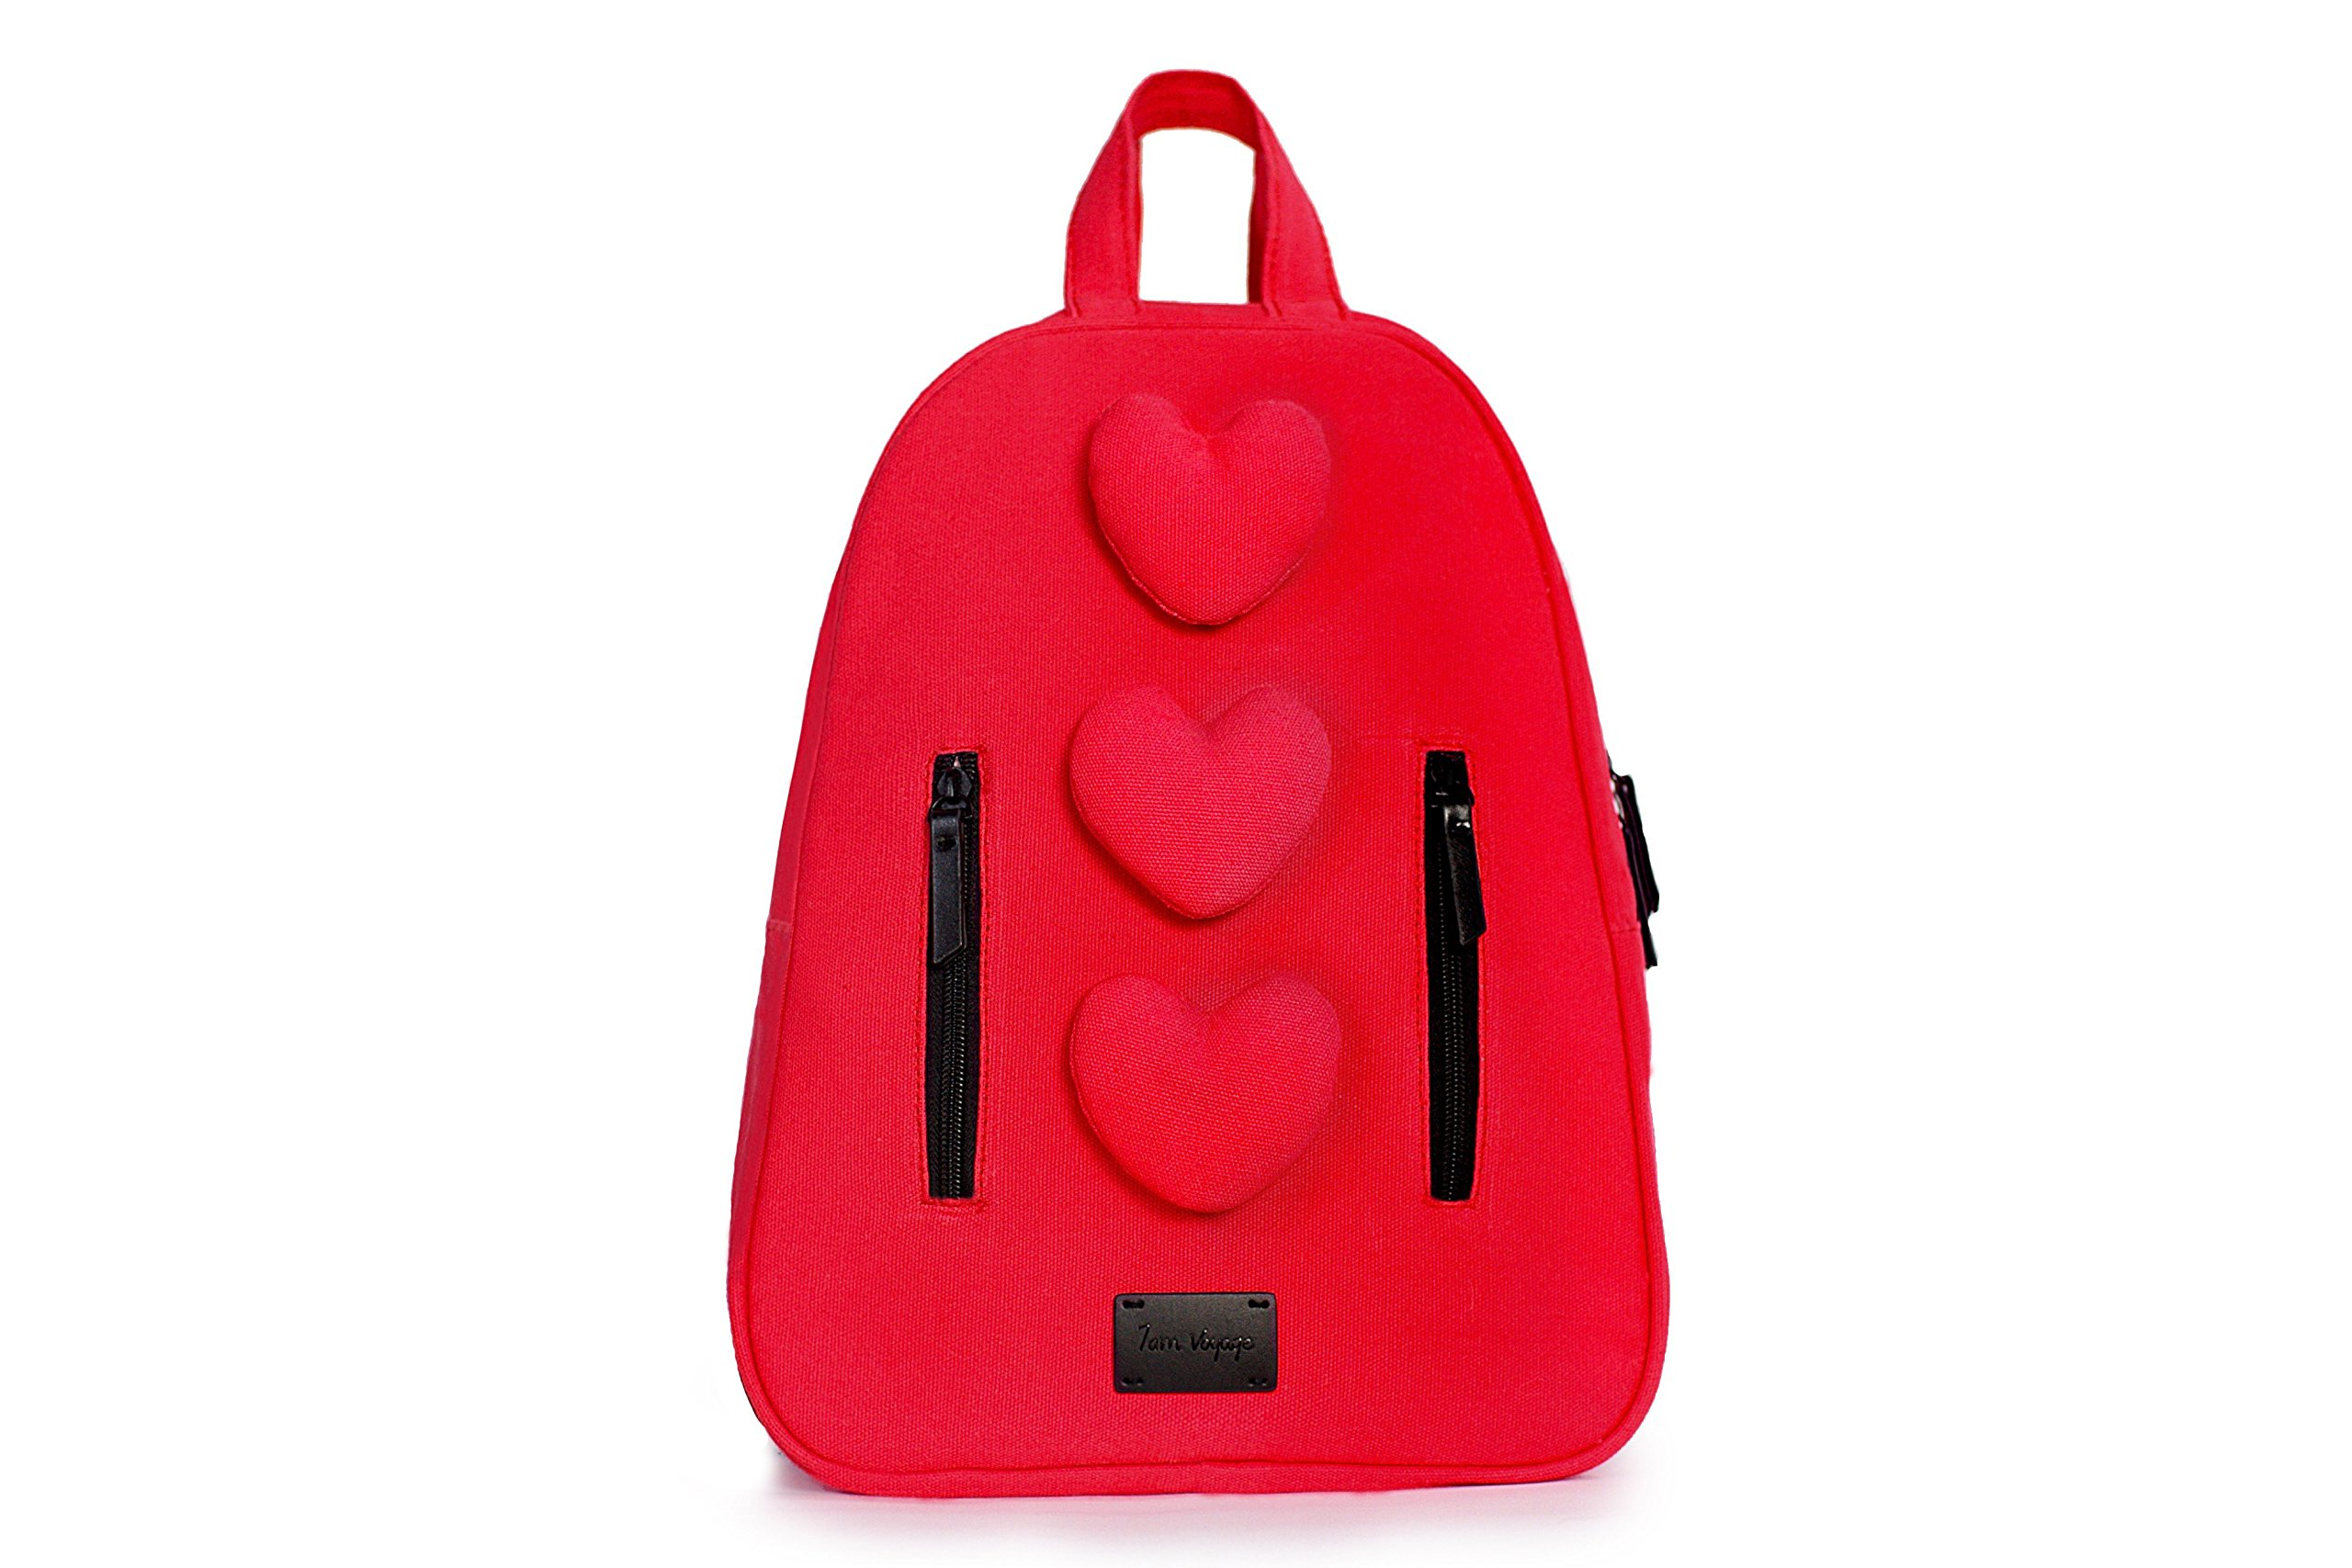 7AM Voyage Mini Hearts Cotton Backpack, Toddlers, Kids and Teens School Backpack, Machine Washable and Durable